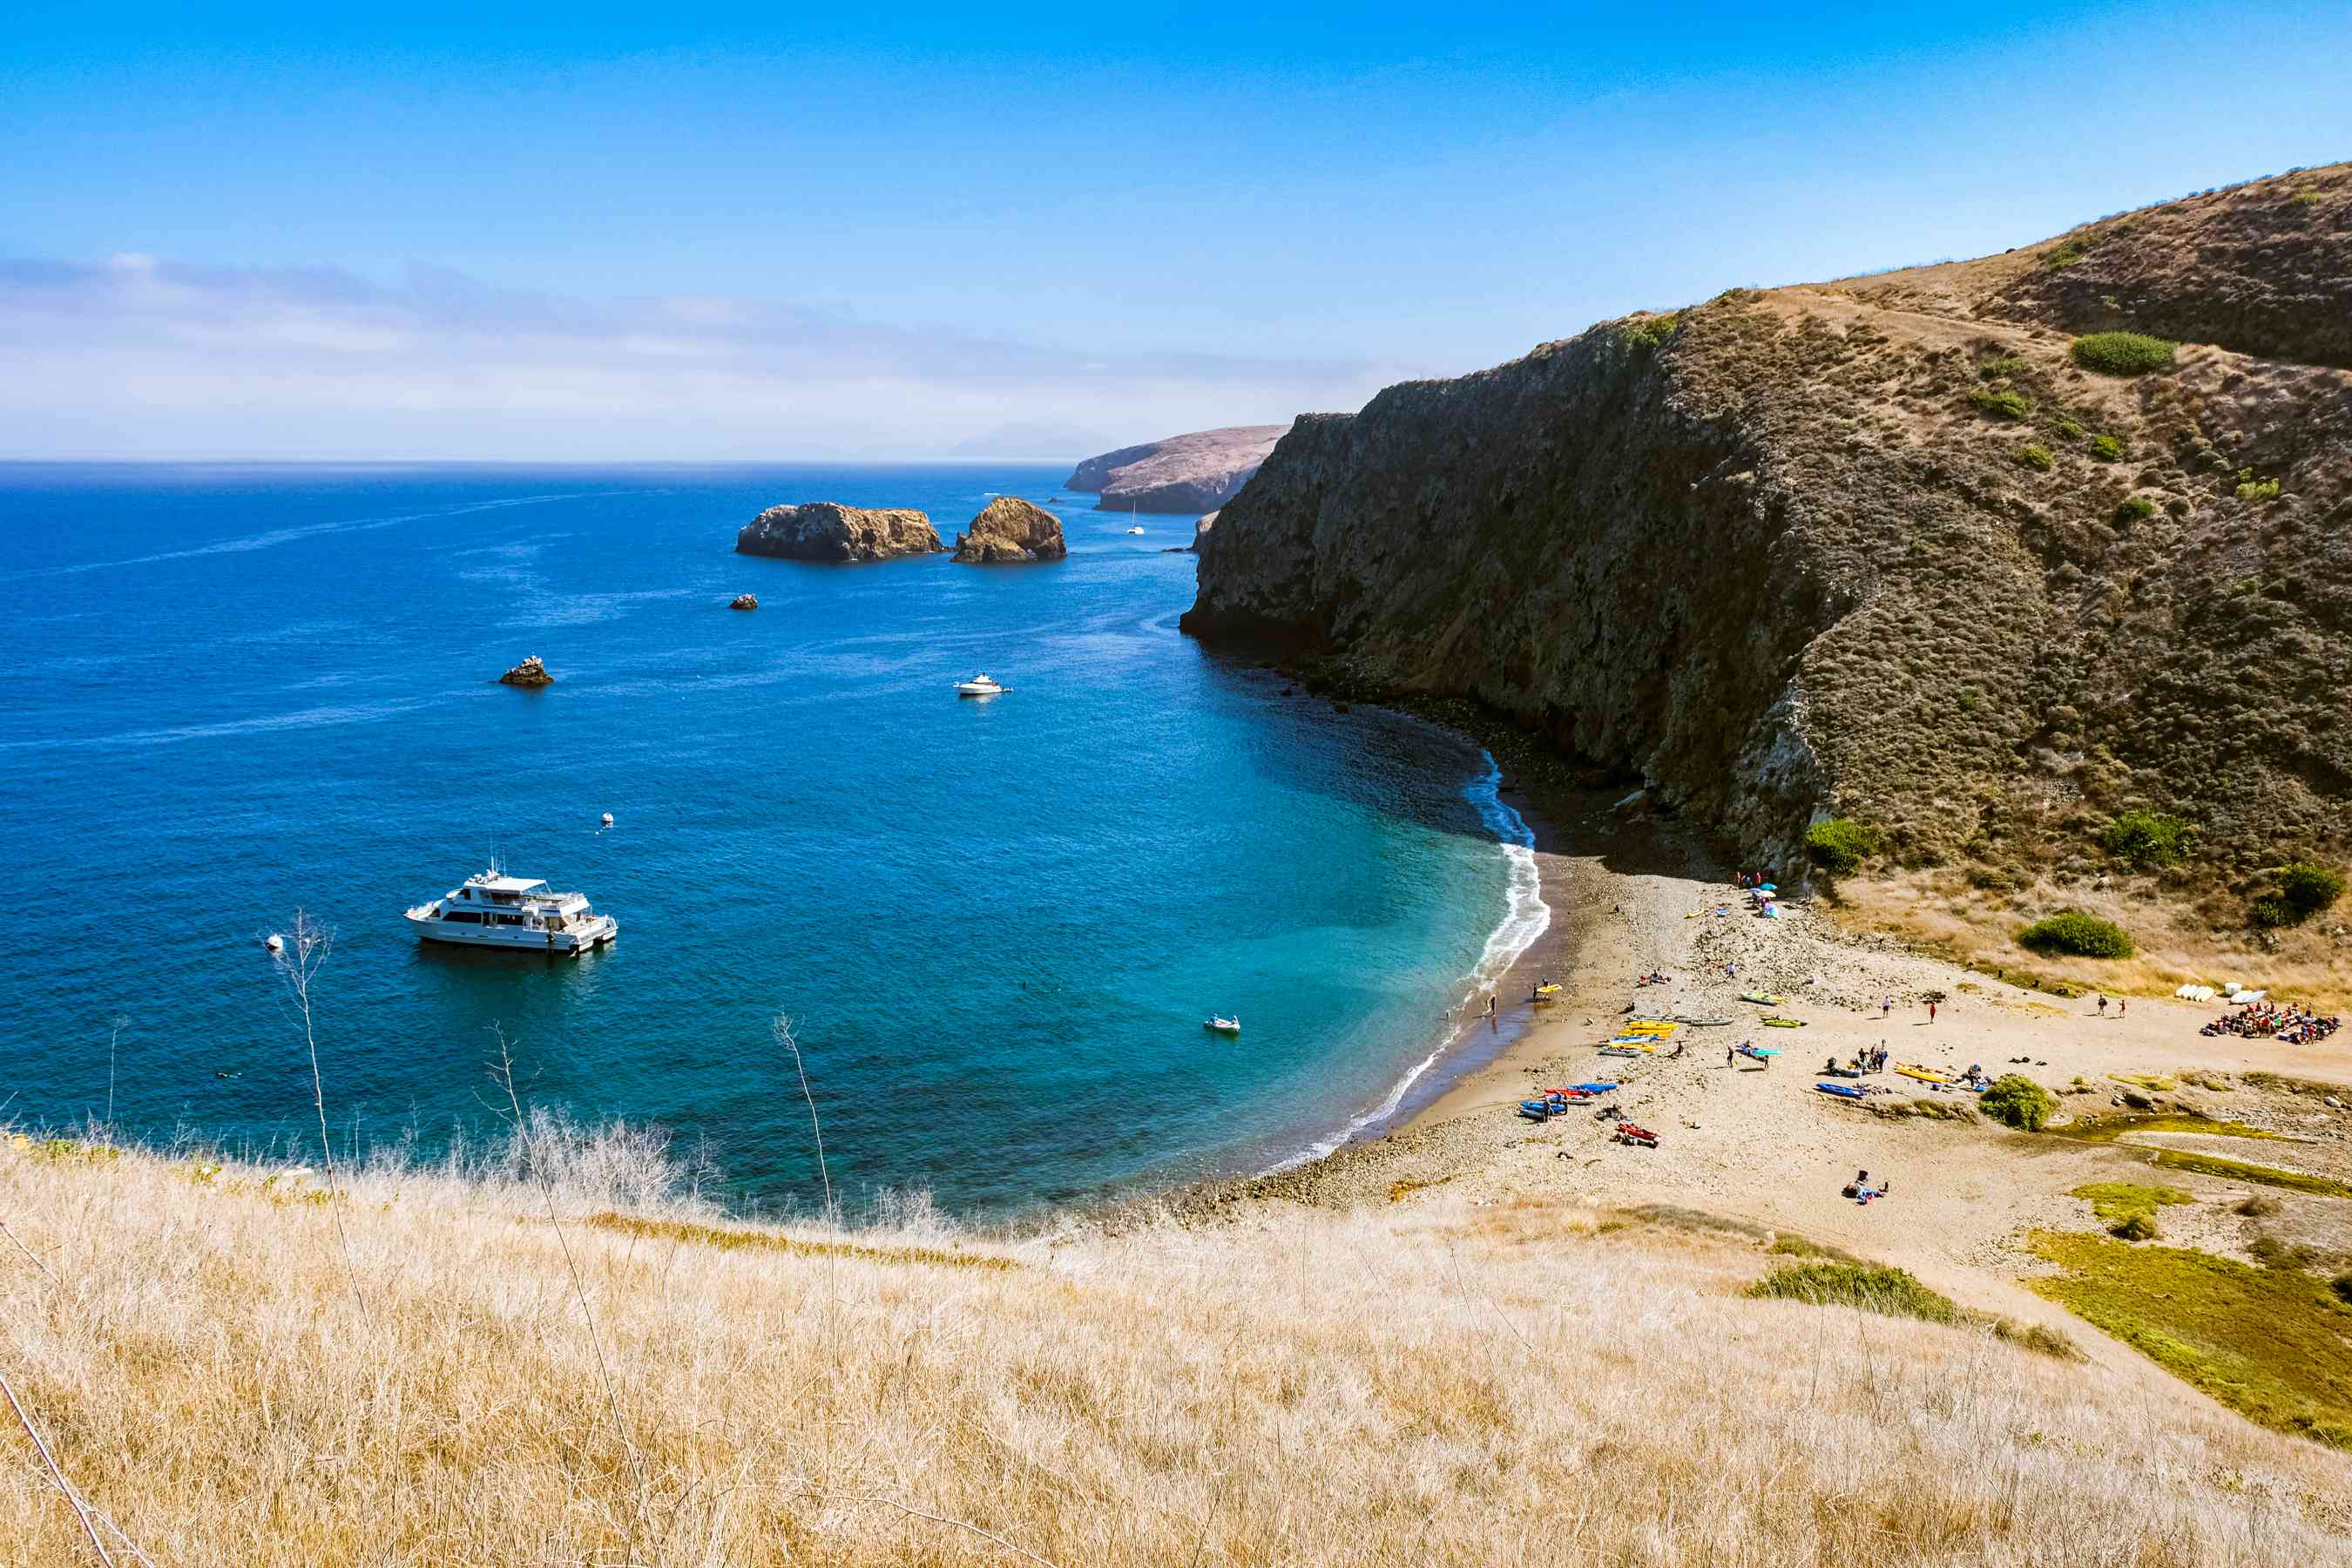 A boat leaving a beach on the Channel Islands